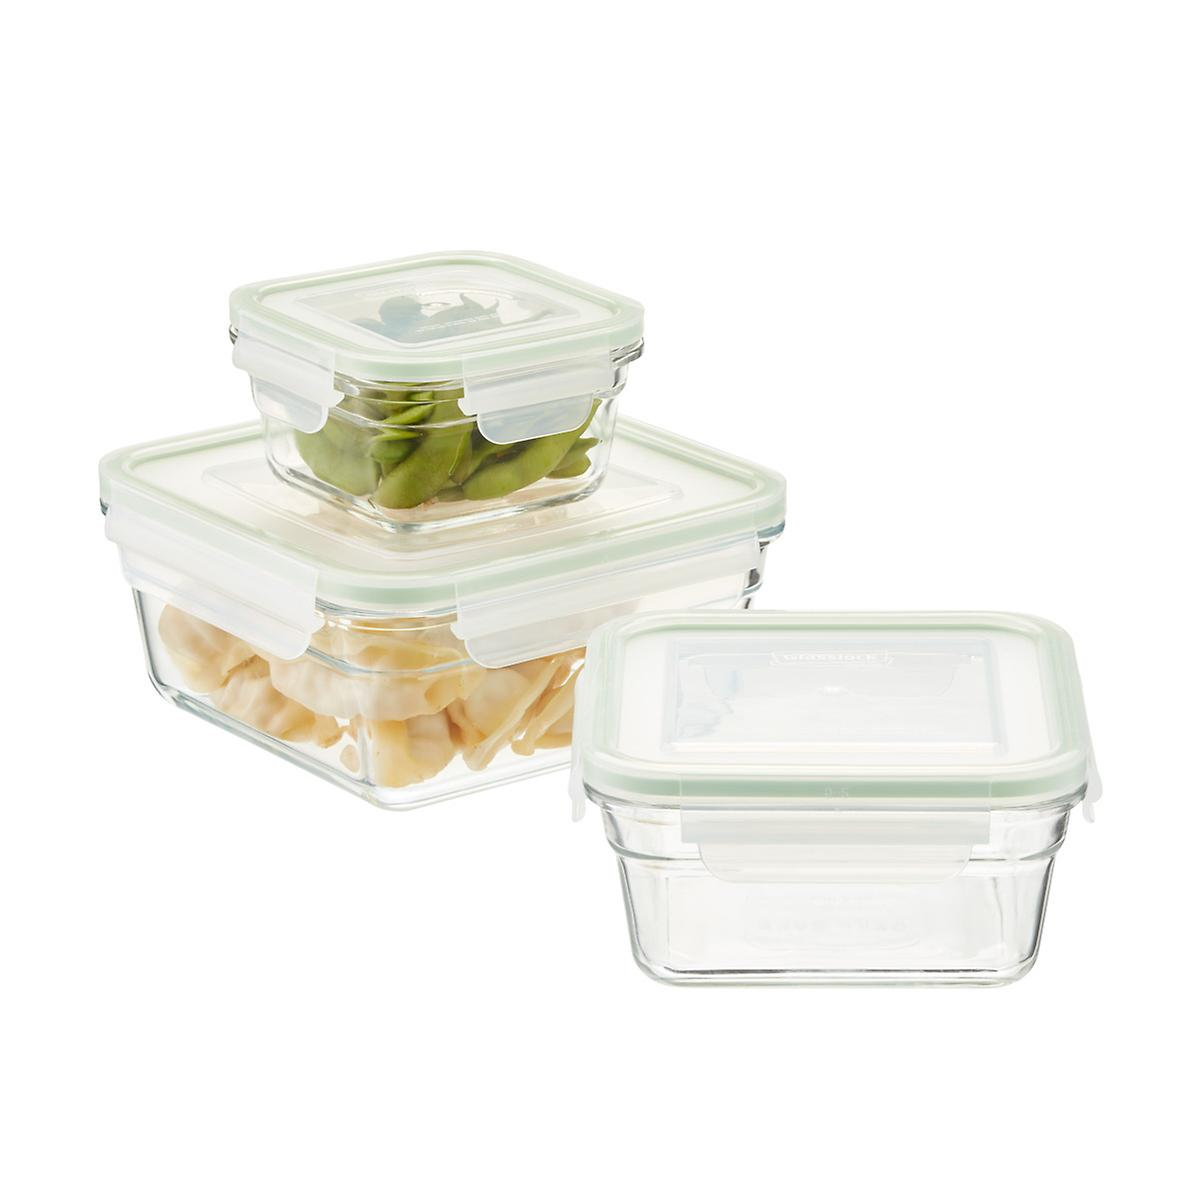 Glasslock Square Food Containers with Lids ...